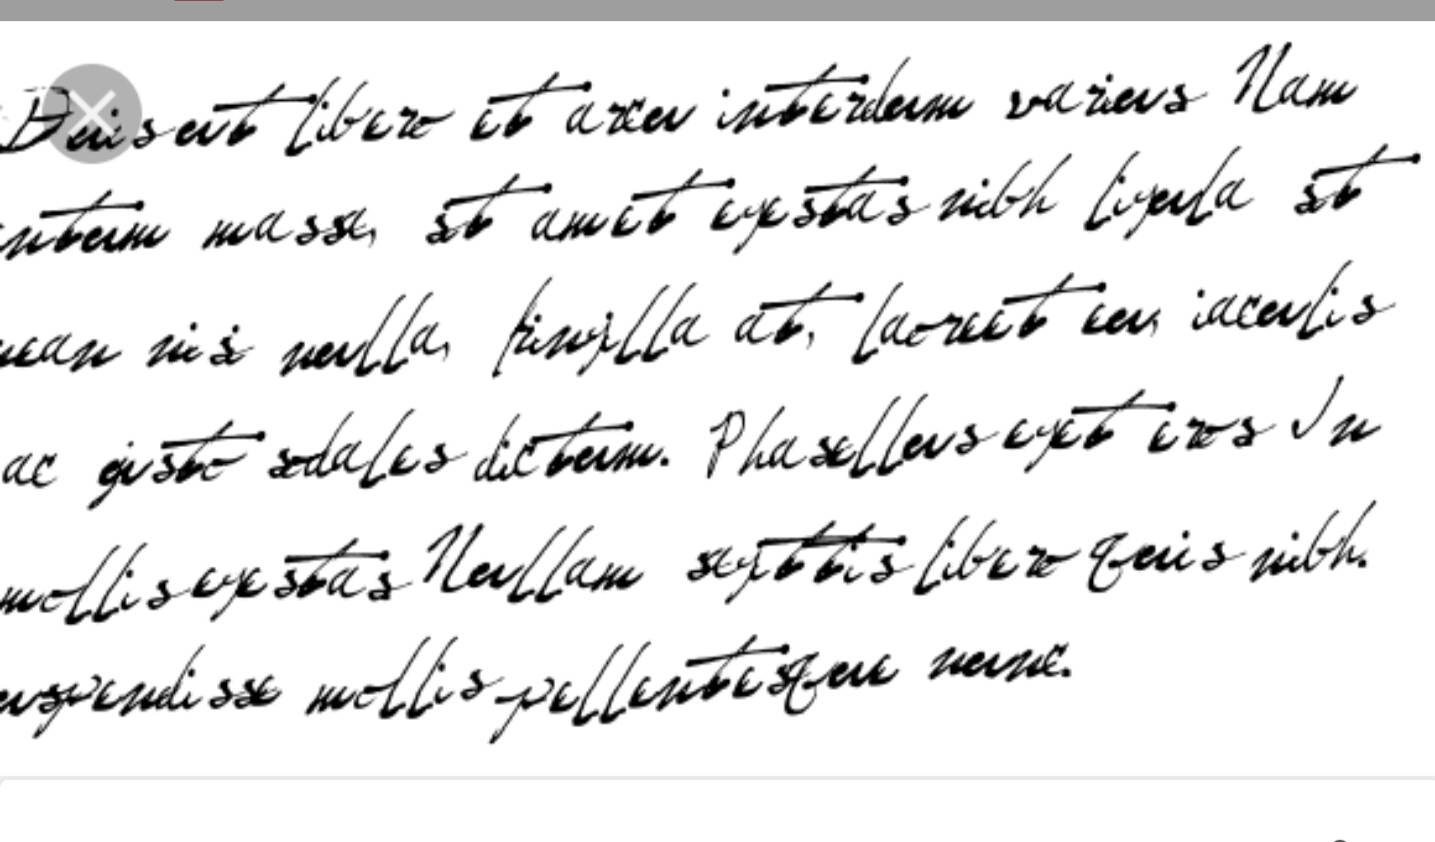 transcribe 10 pages of handwritten documents.